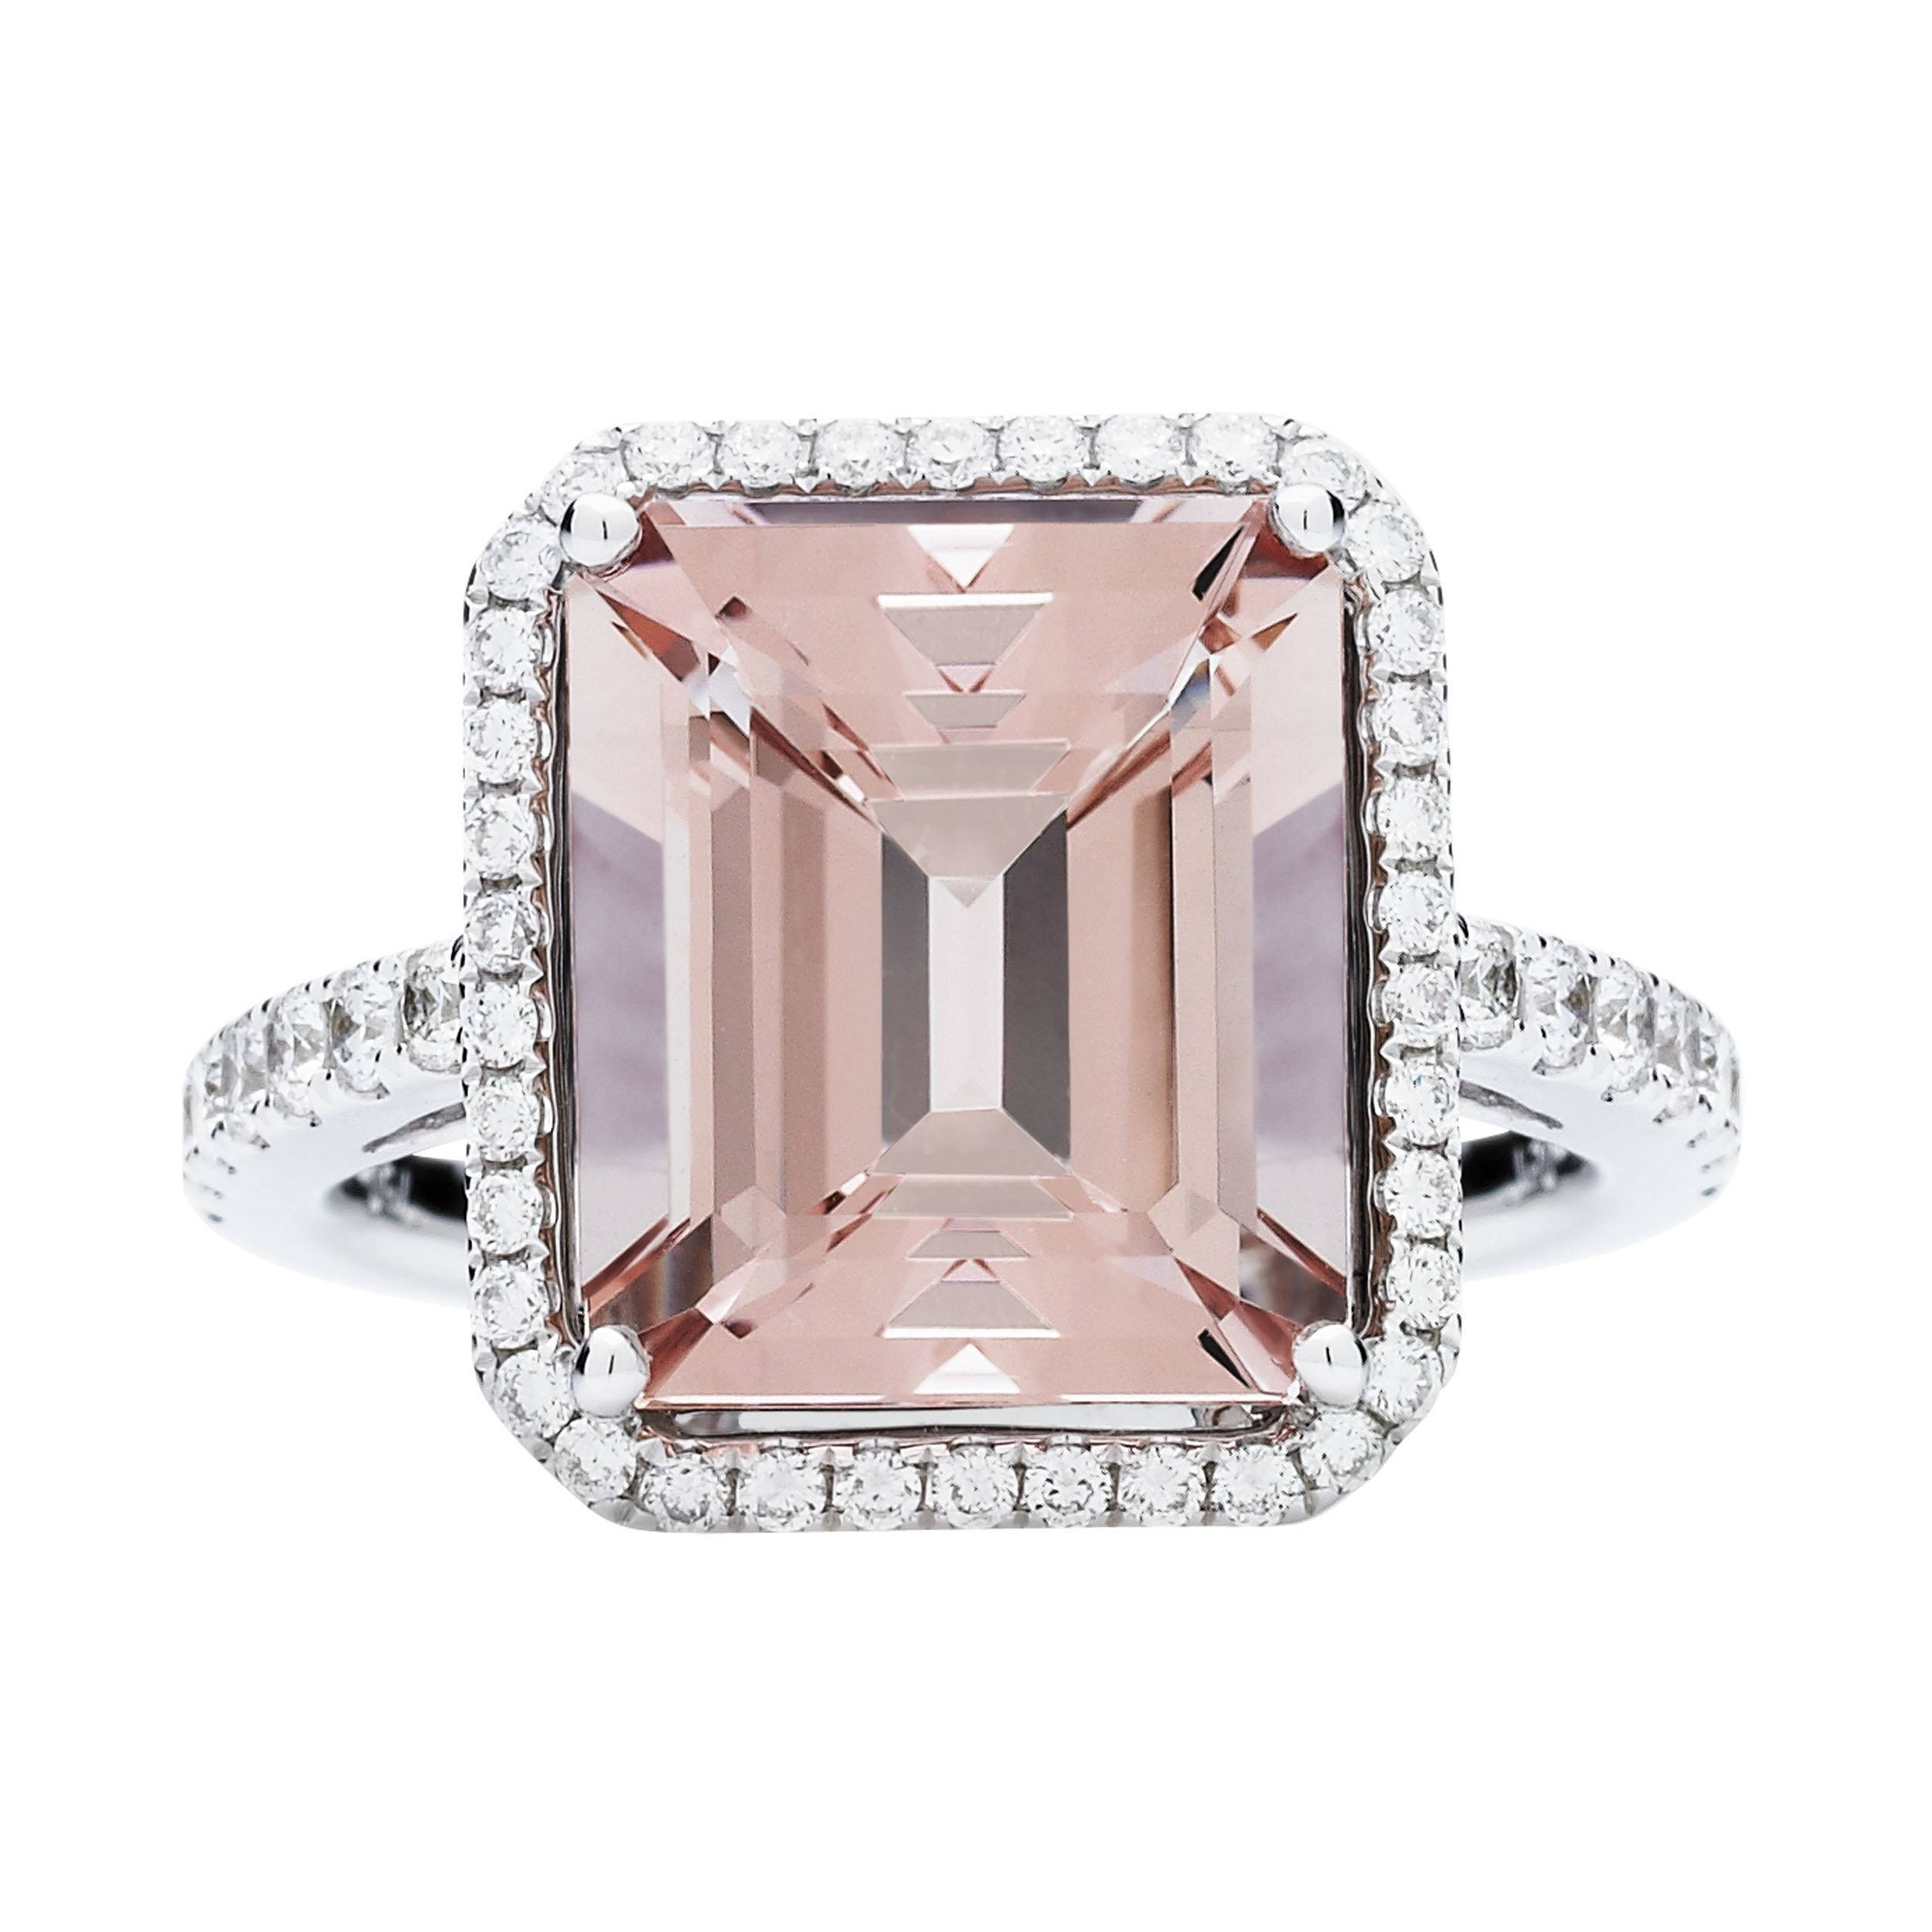 18Ct Pink Morganite & Diamond Rochester Ring |Jan Logan Fine Jewellery Inside Rochester Engagement Rings (Gallery 1 of 15)